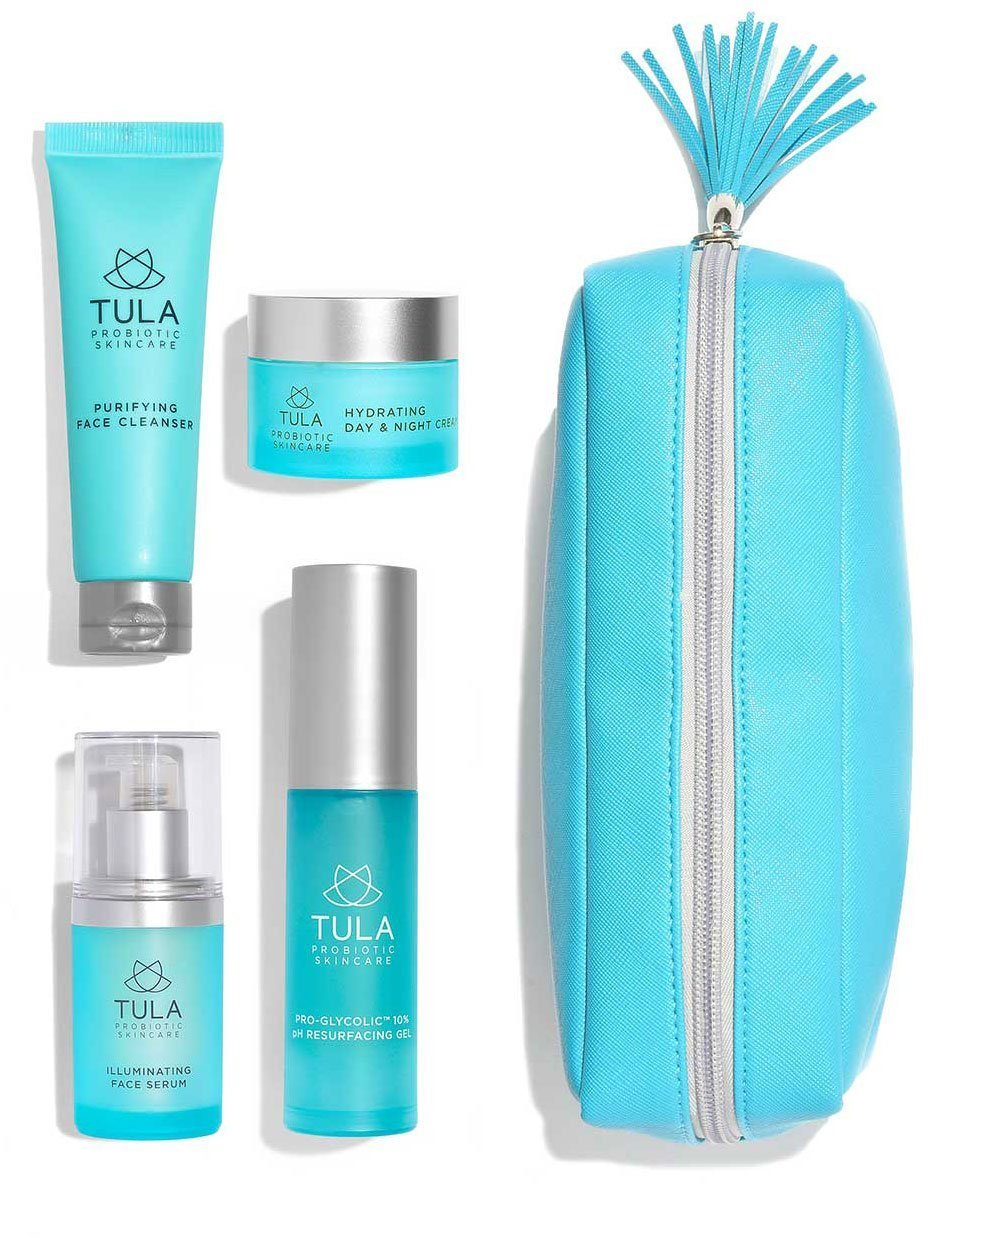 TULA Probiotic Skin Care Discovery Kit - Travel-friendly Facial Cleanser, Day & Night Moisturizer, Illuminating Serum & Pro-Glycolic Resurfacing Gel for Glowing and Youthful Skin TULA Skin Care 3001A-VE